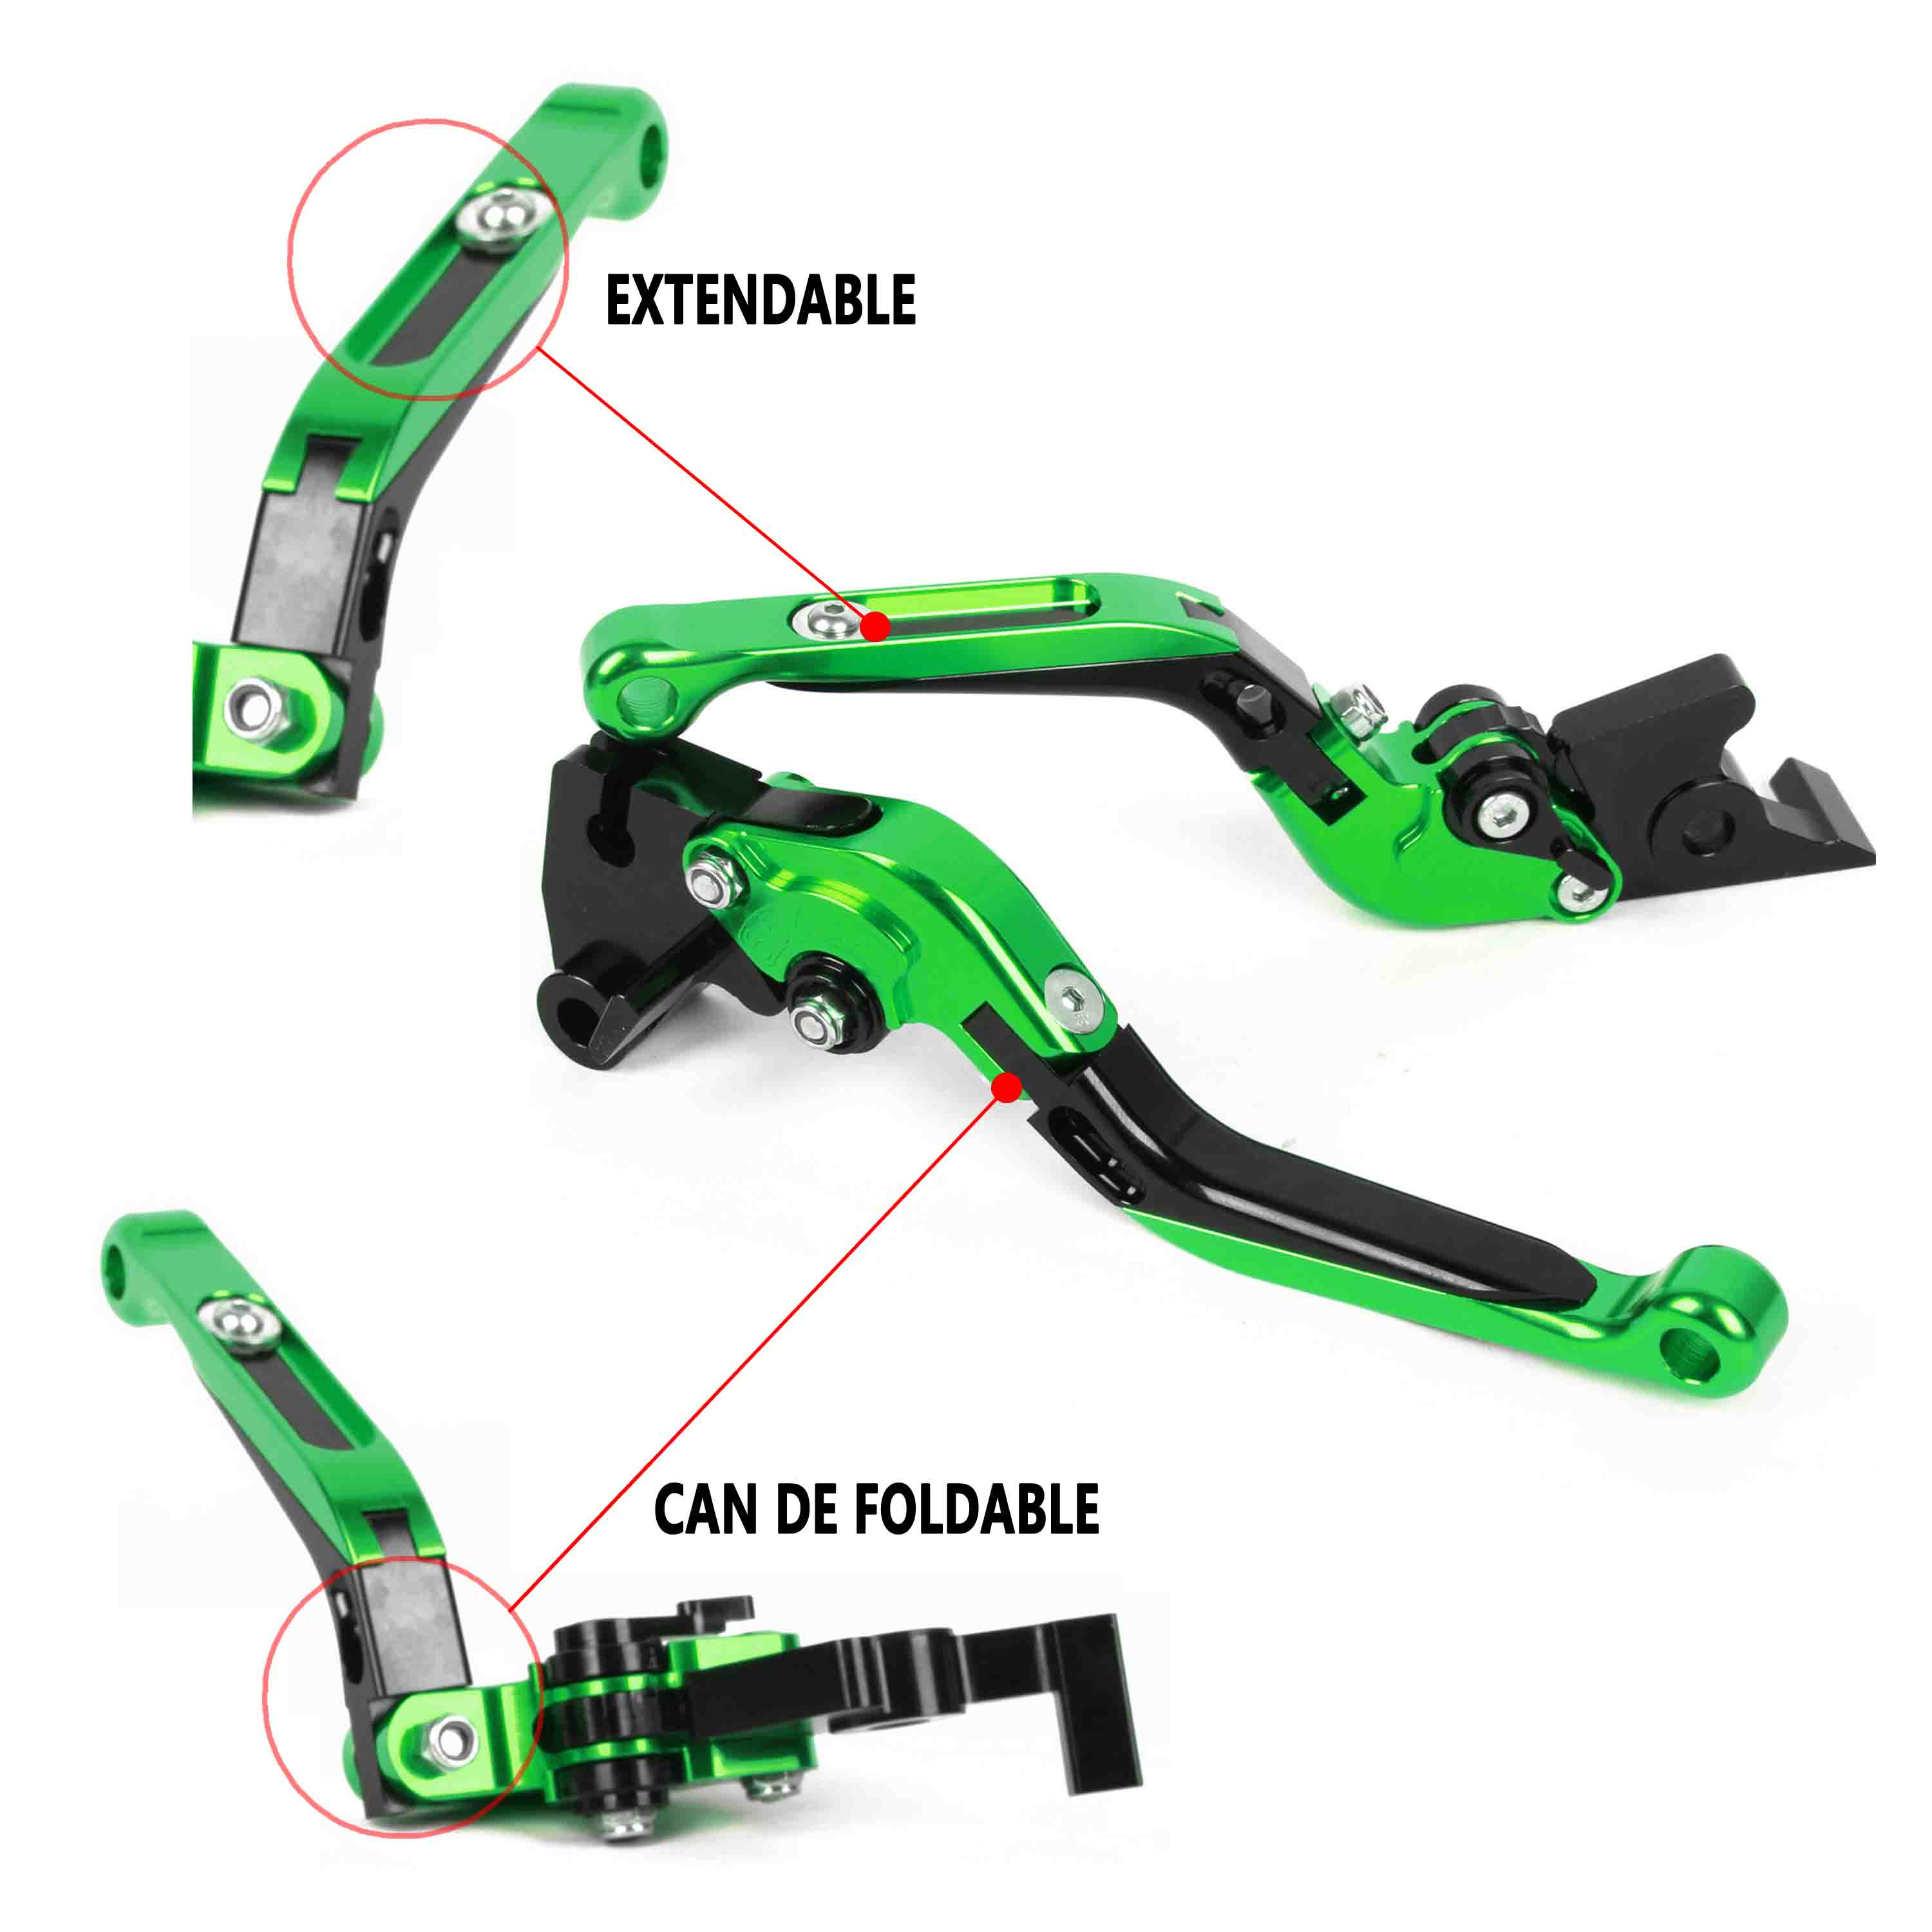 ФОТО For Kawasaki ZX10R 2006-2015 Foldable Extendable Brake Clutch Levers Aluminum Alloy CNC High-quality Folding&Extending  Levers